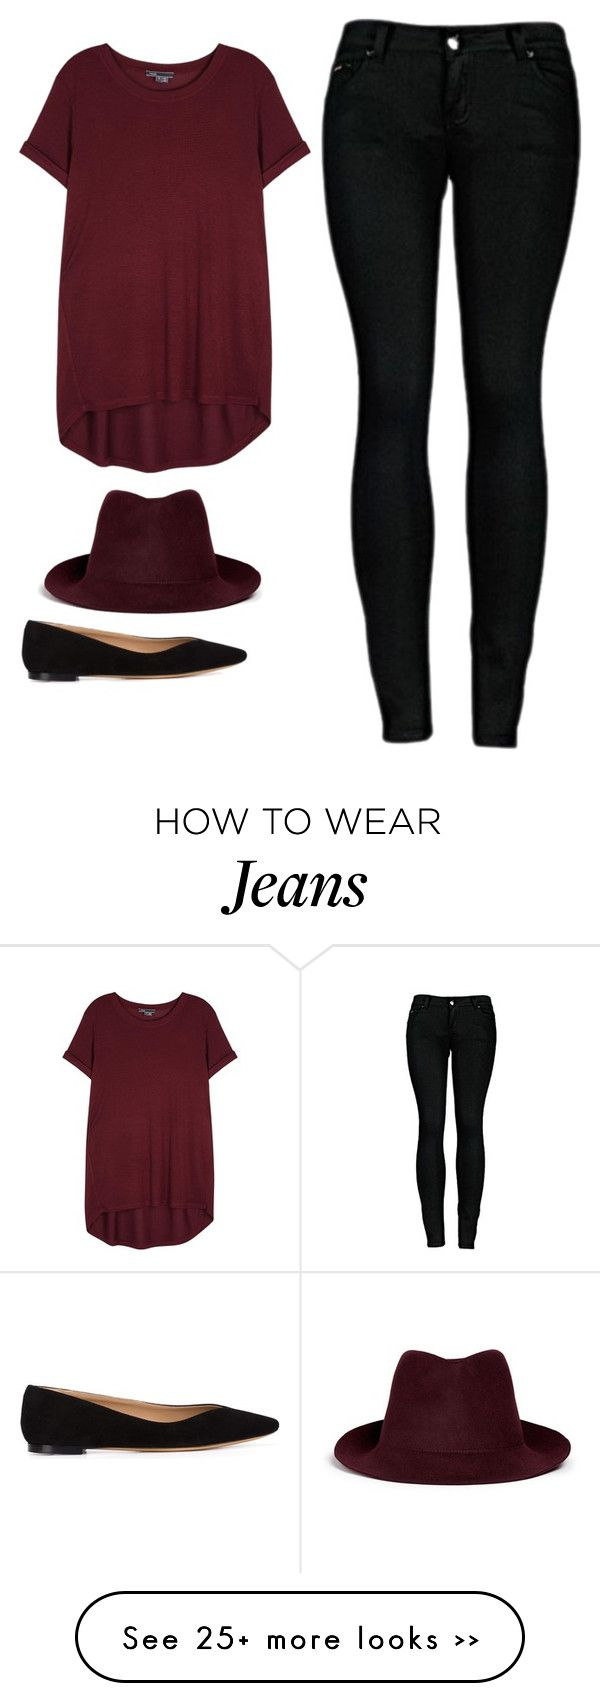 """Untitled #3465"" by adi-pollak on Polyvore featuring 2LUV, STELLA McCARTNEY, Vince and Chloé"